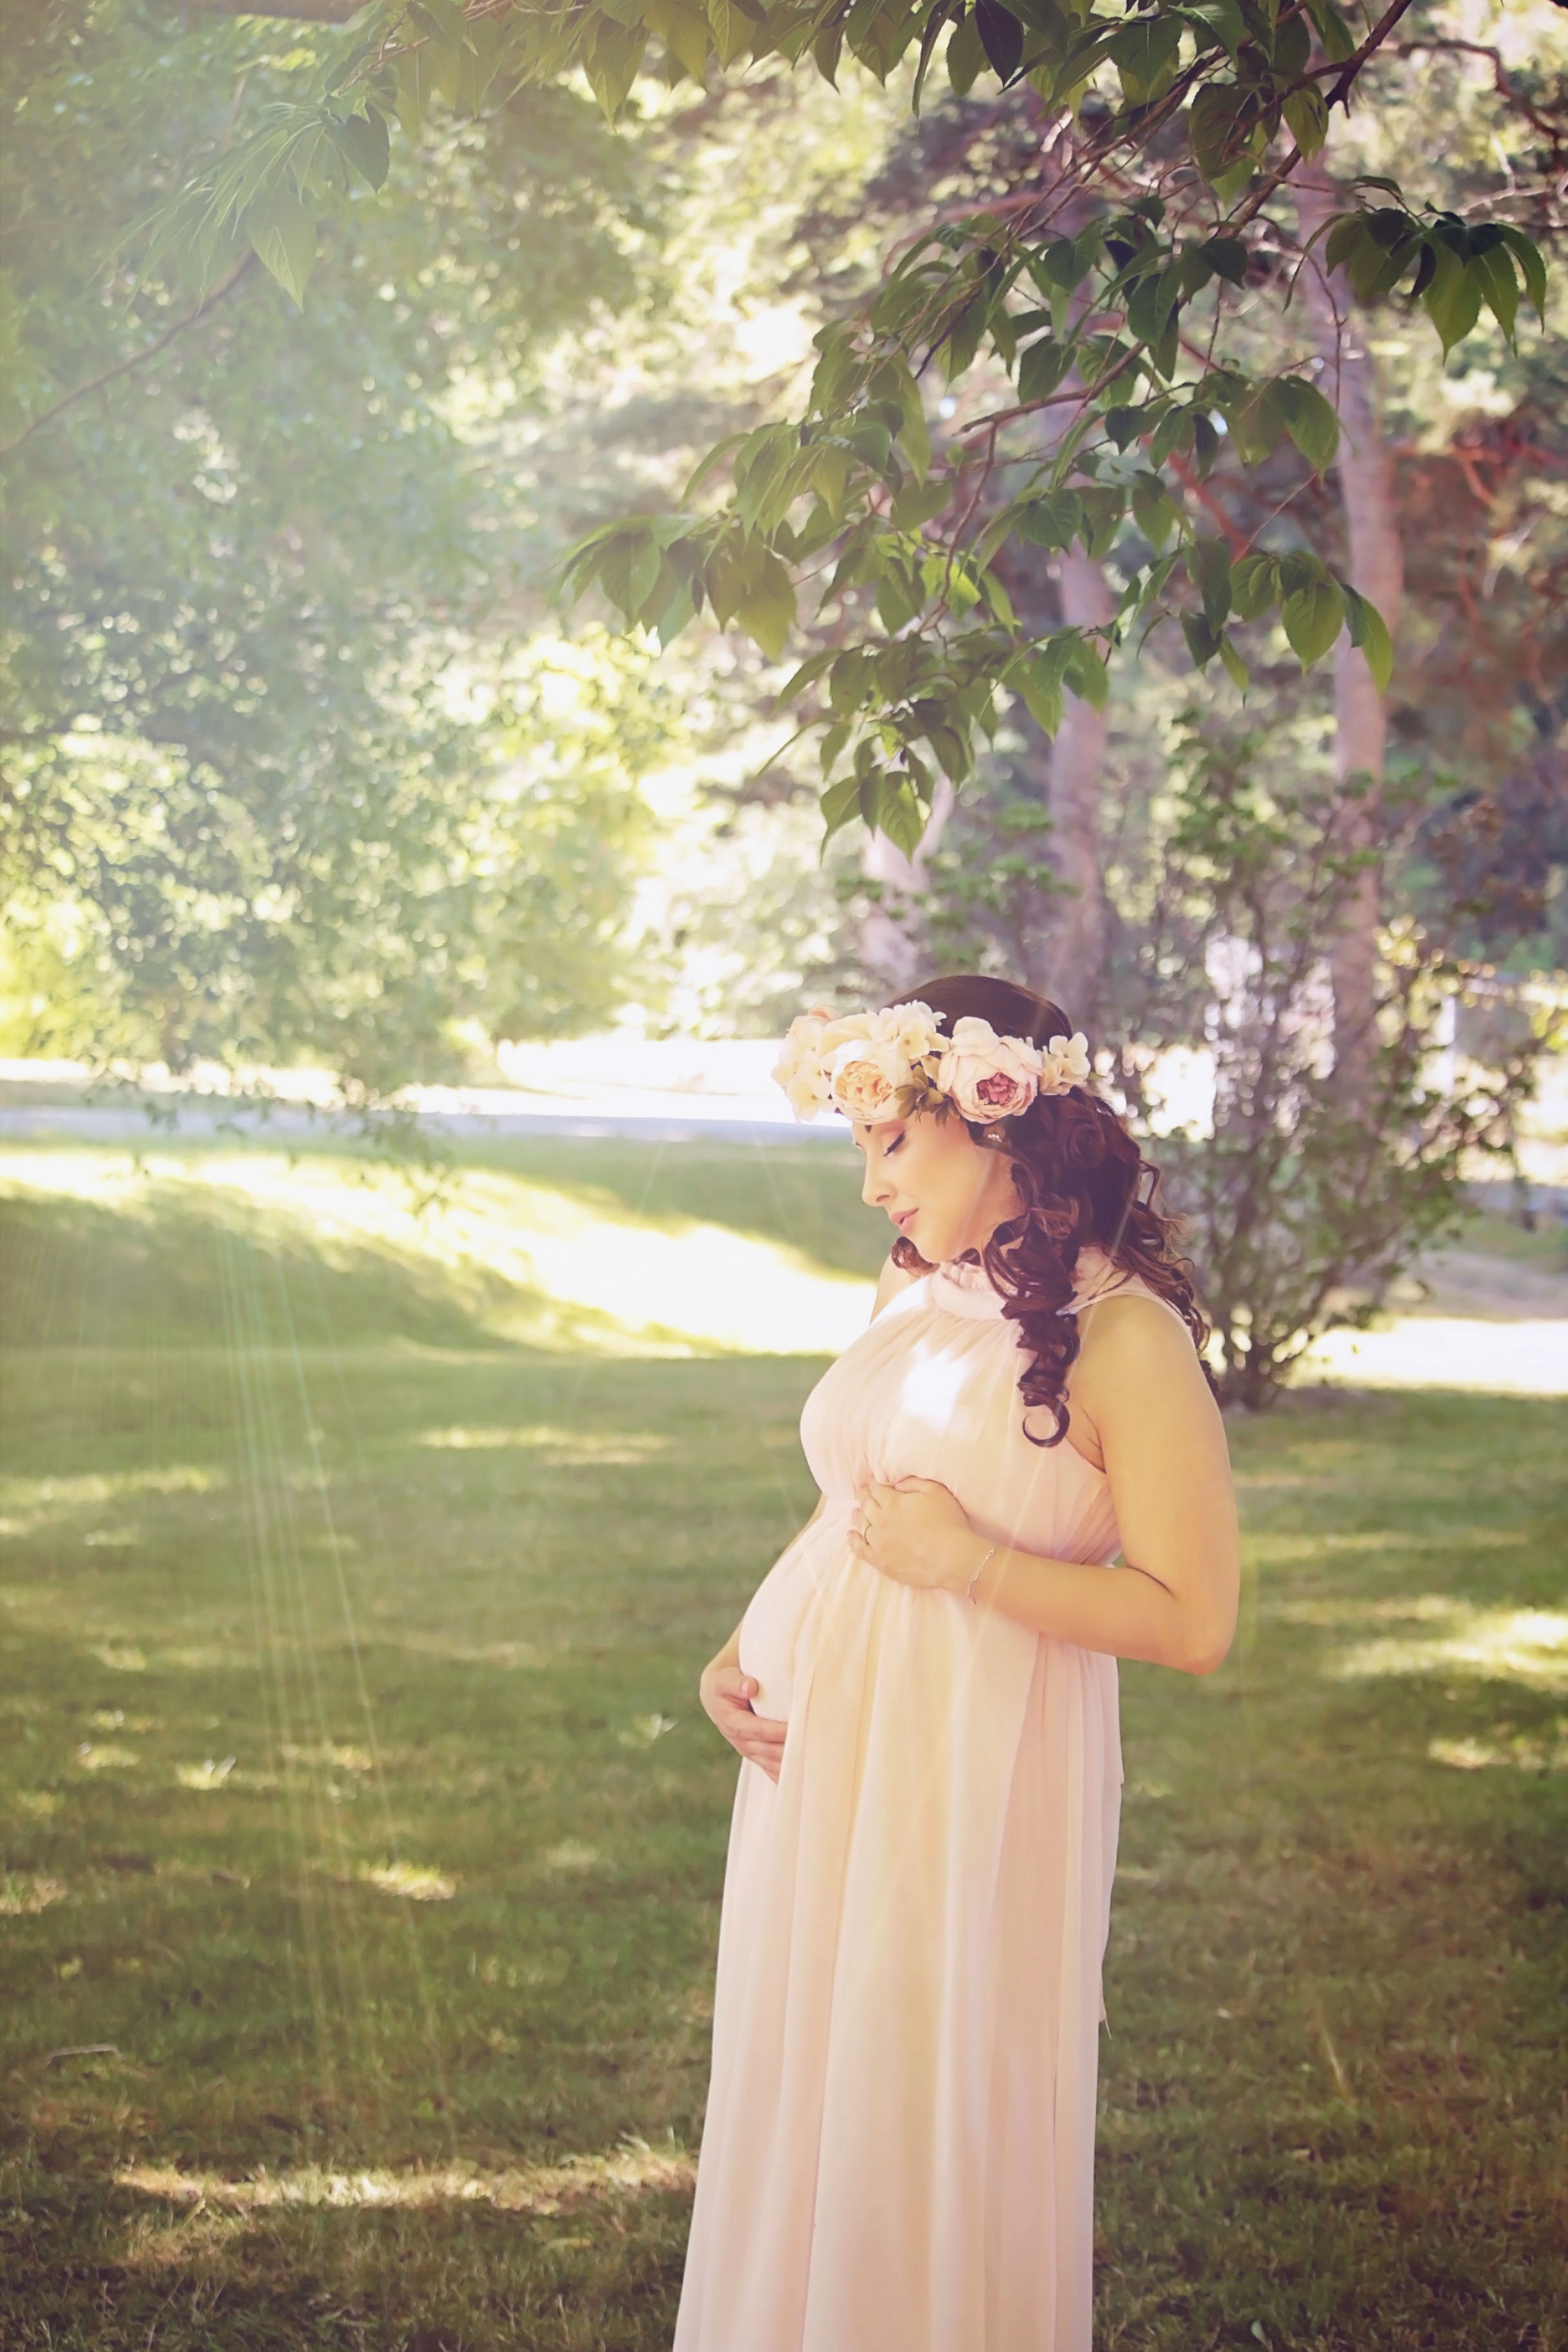 Niagara Falls Maternity photographer